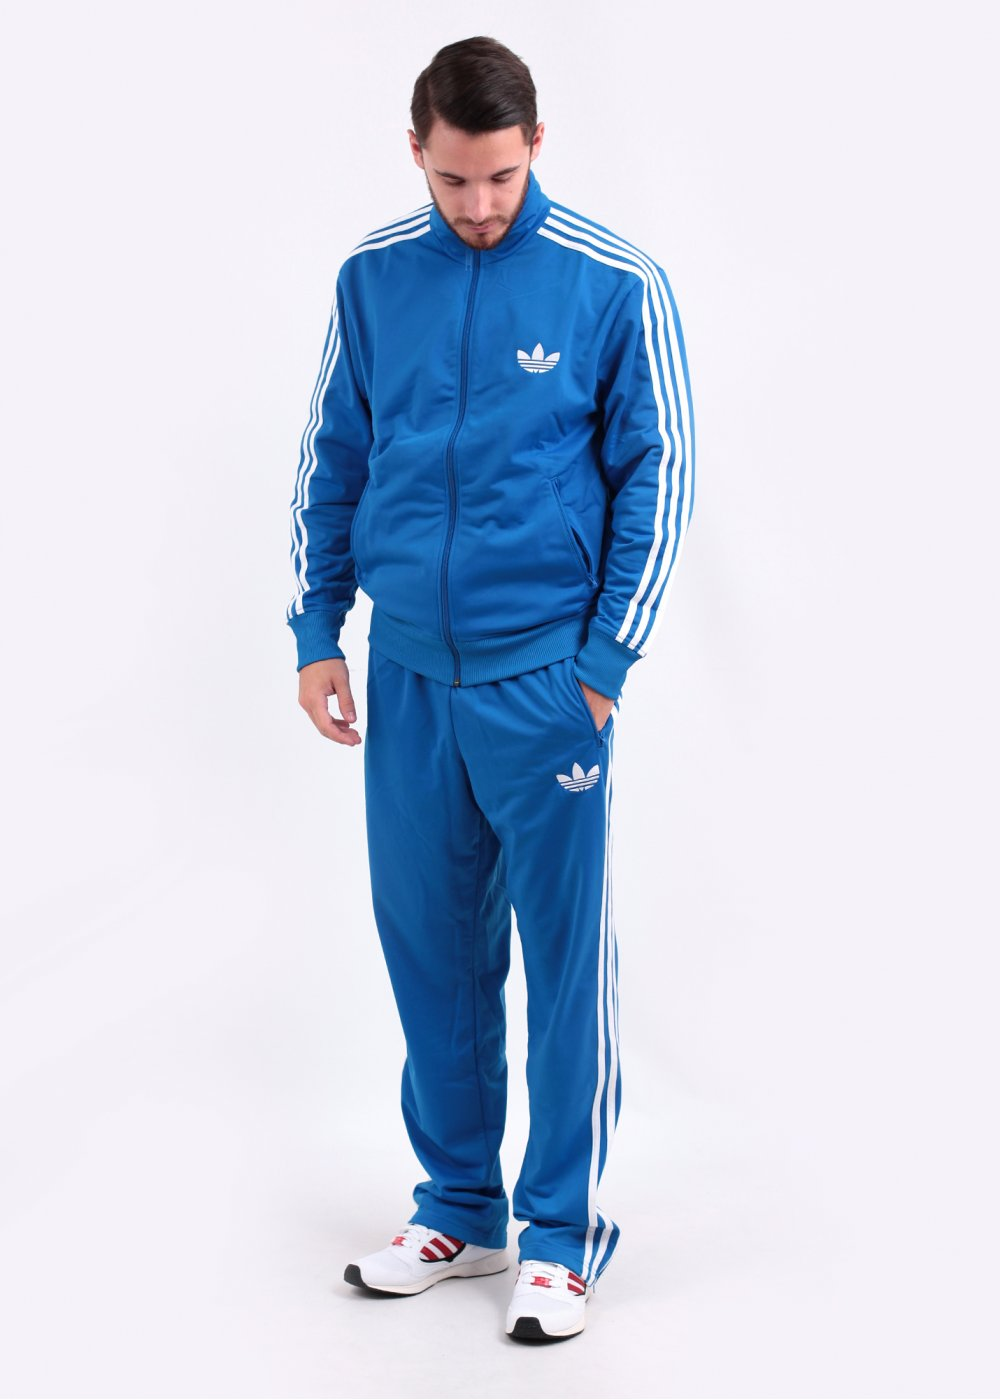 Image Result For La S Tracksuits